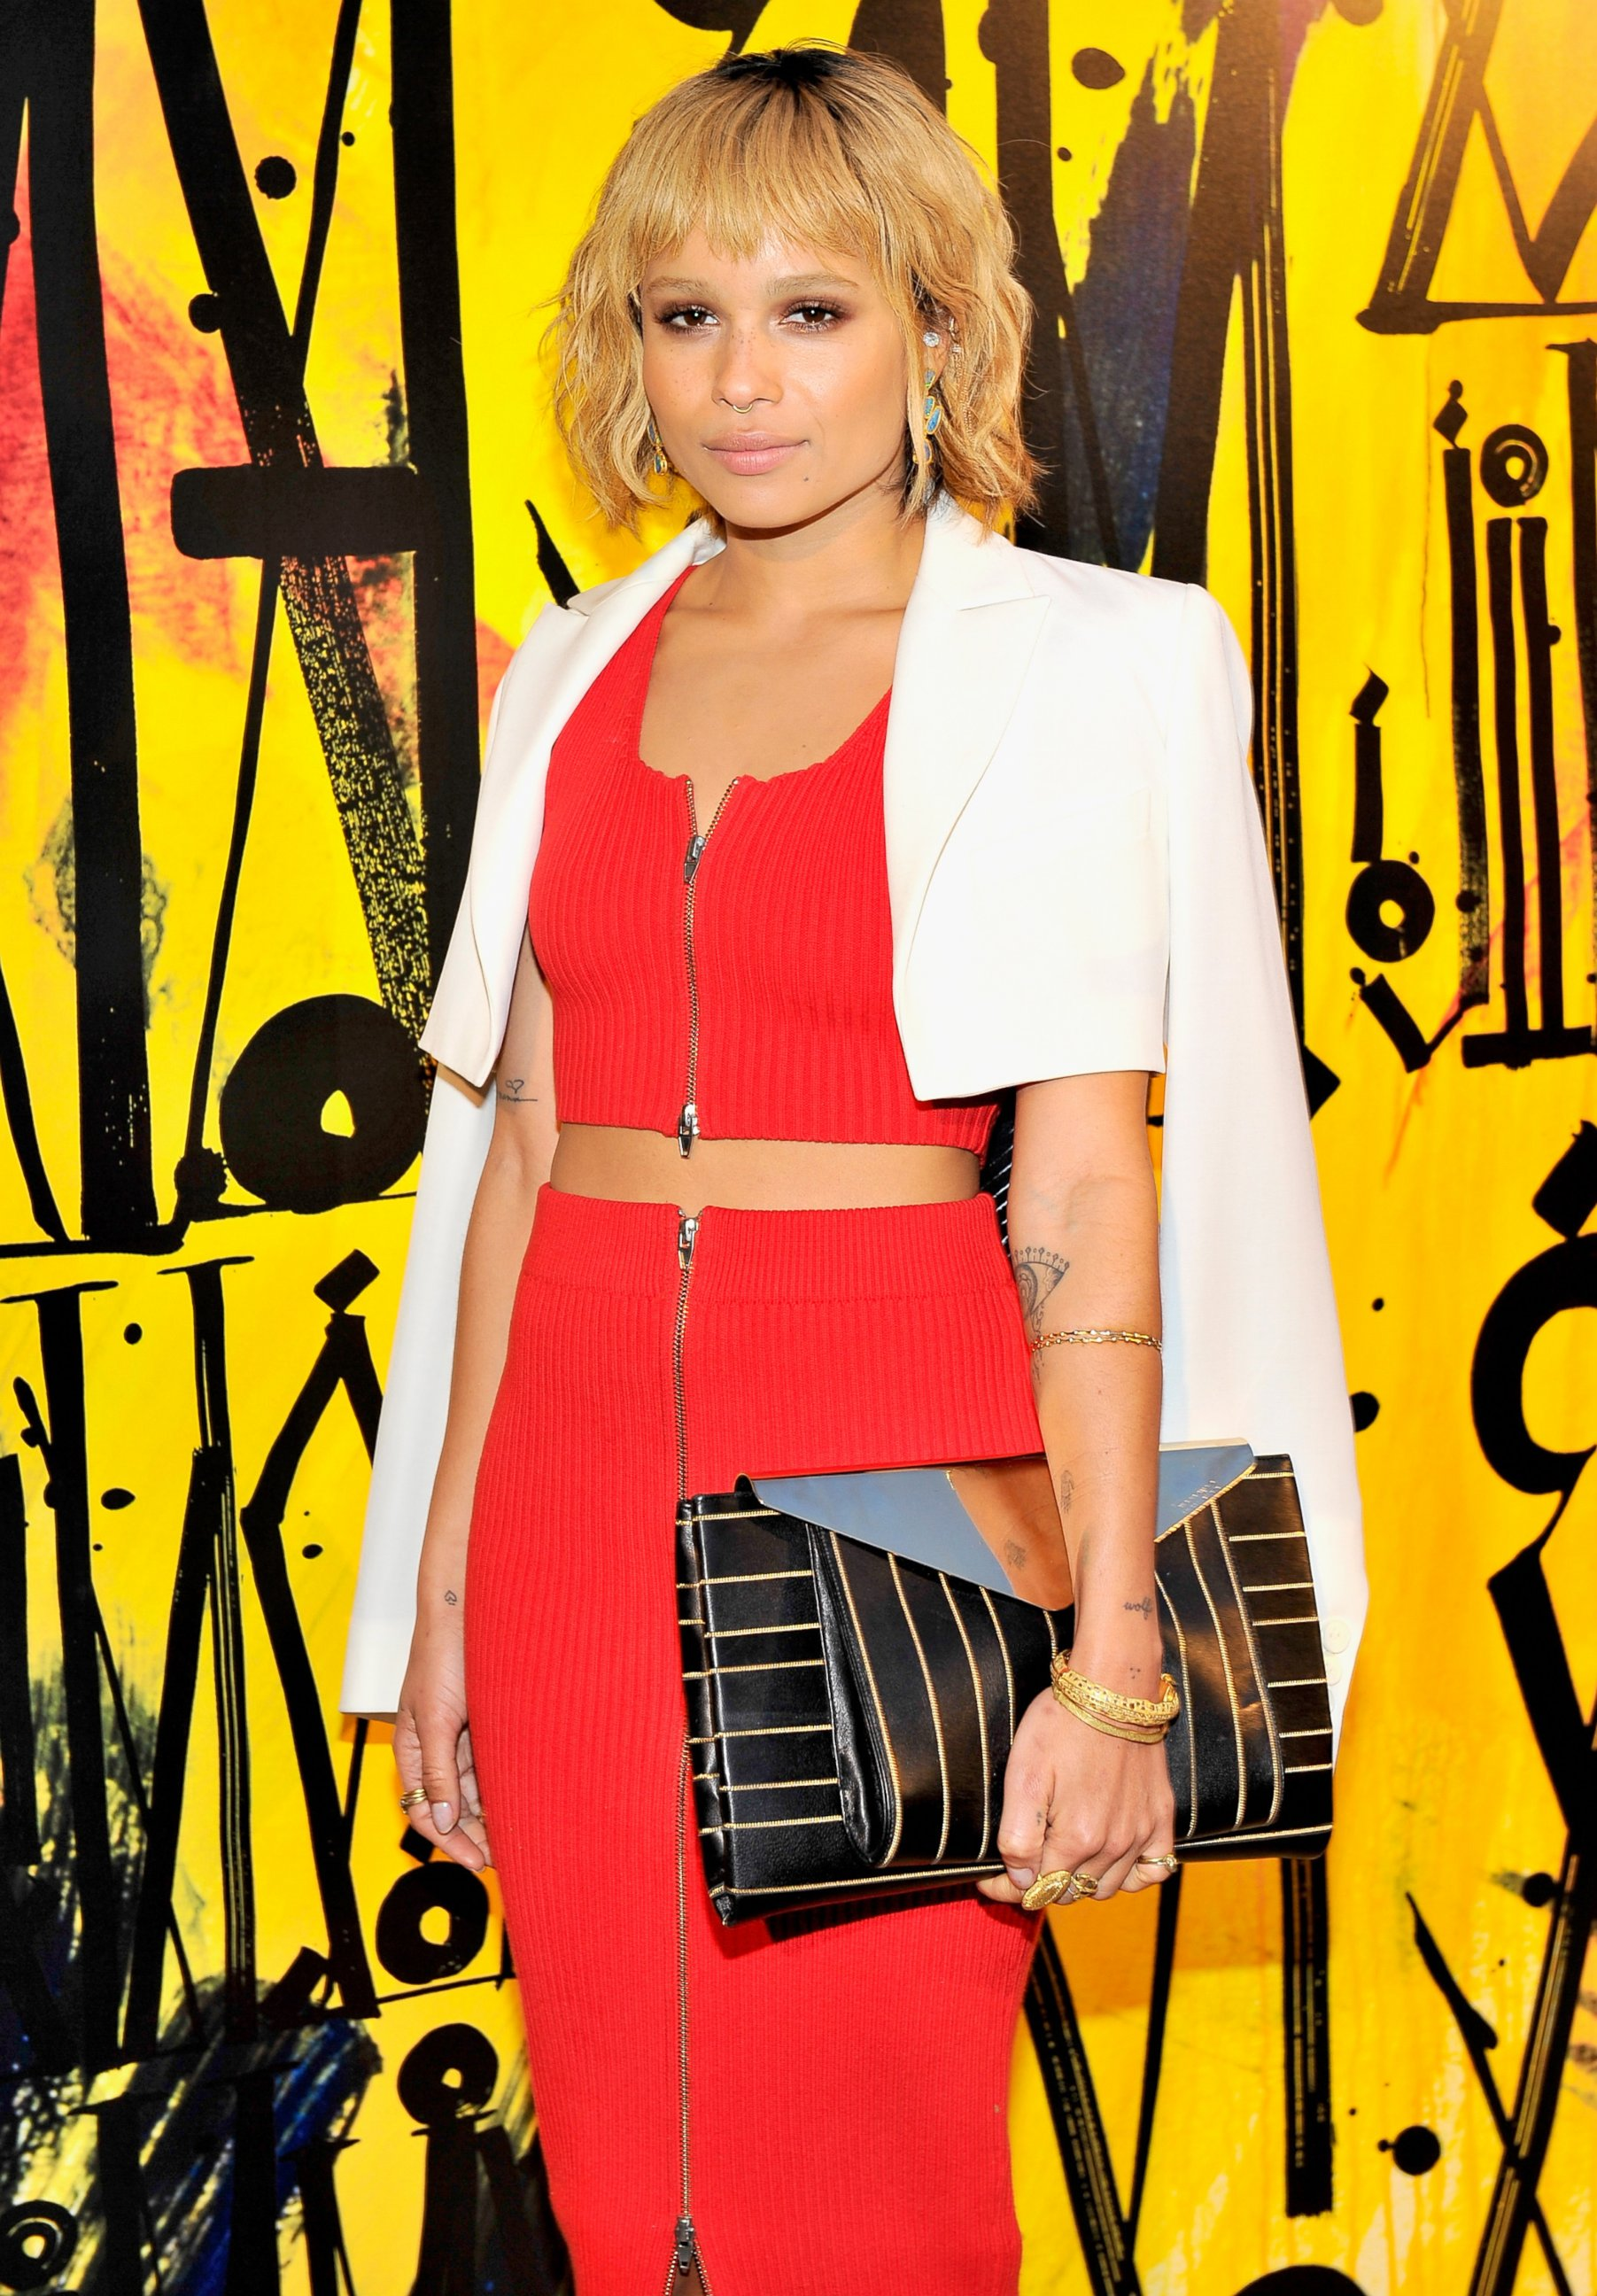 Zoe Kravitz Goes Blonde!